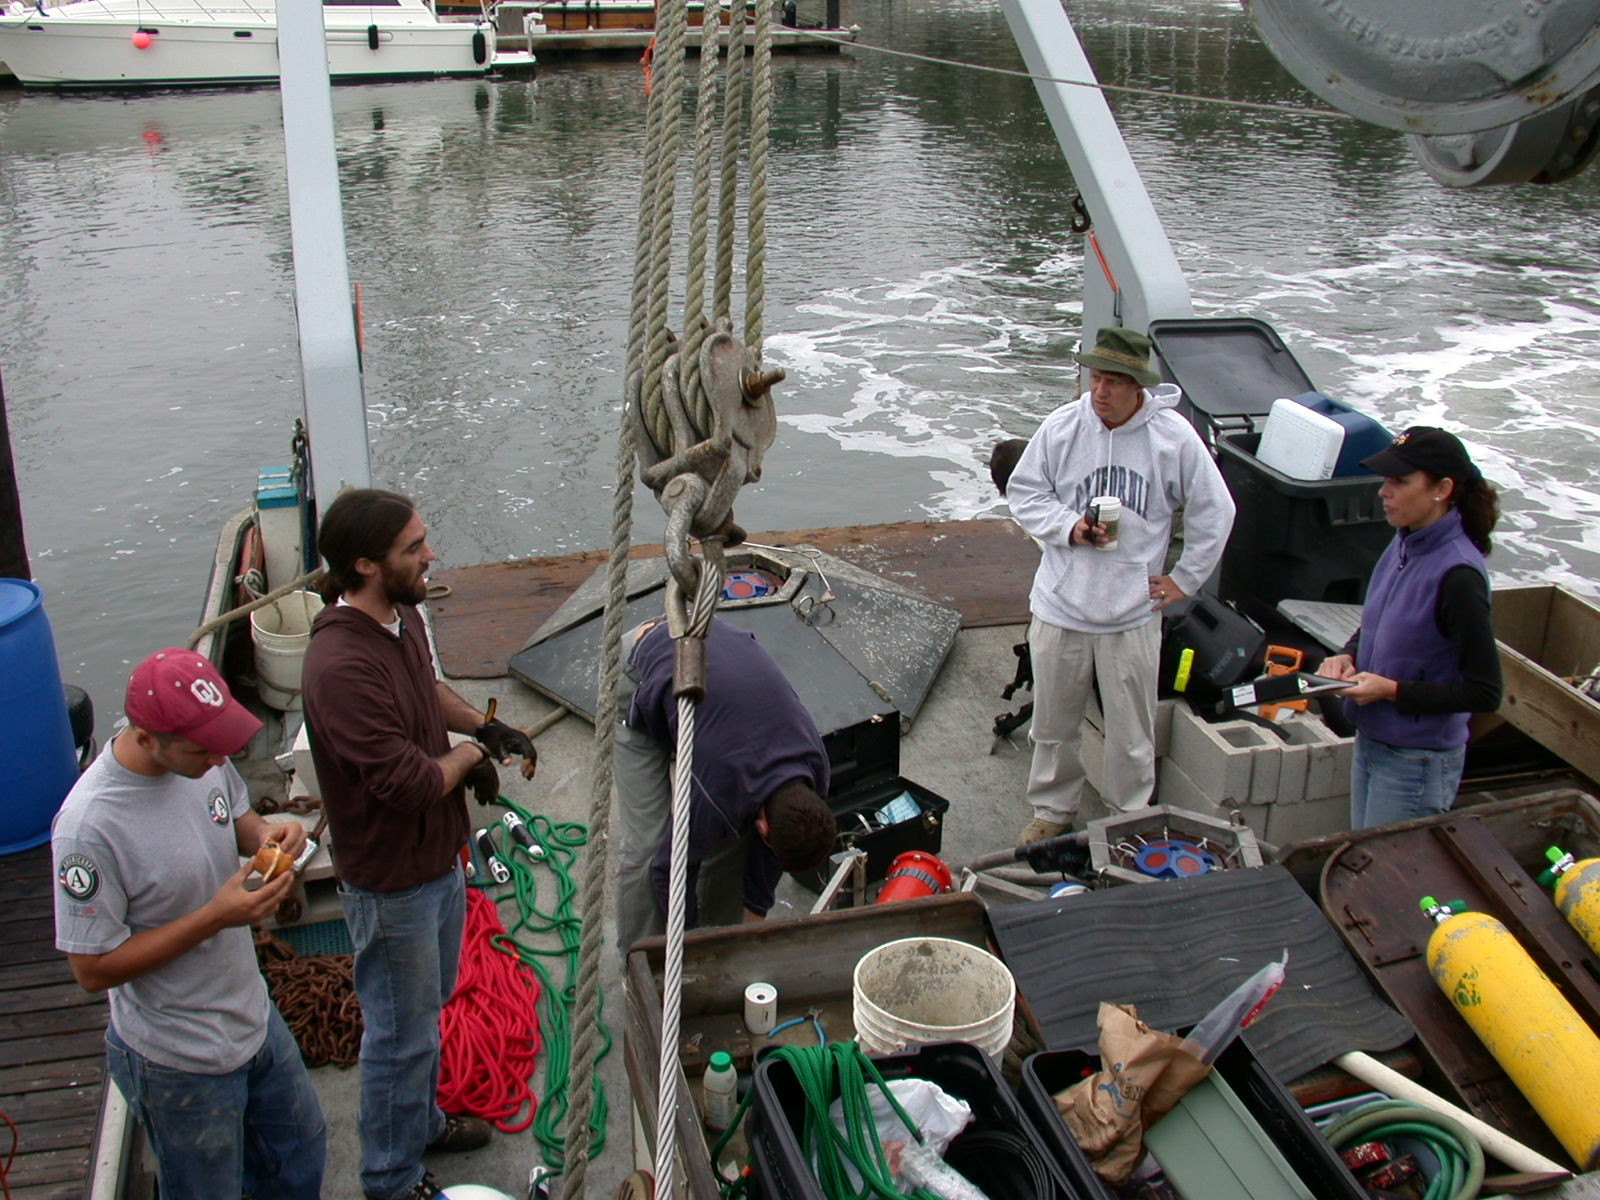 Instrument deployment in Monterey Bay